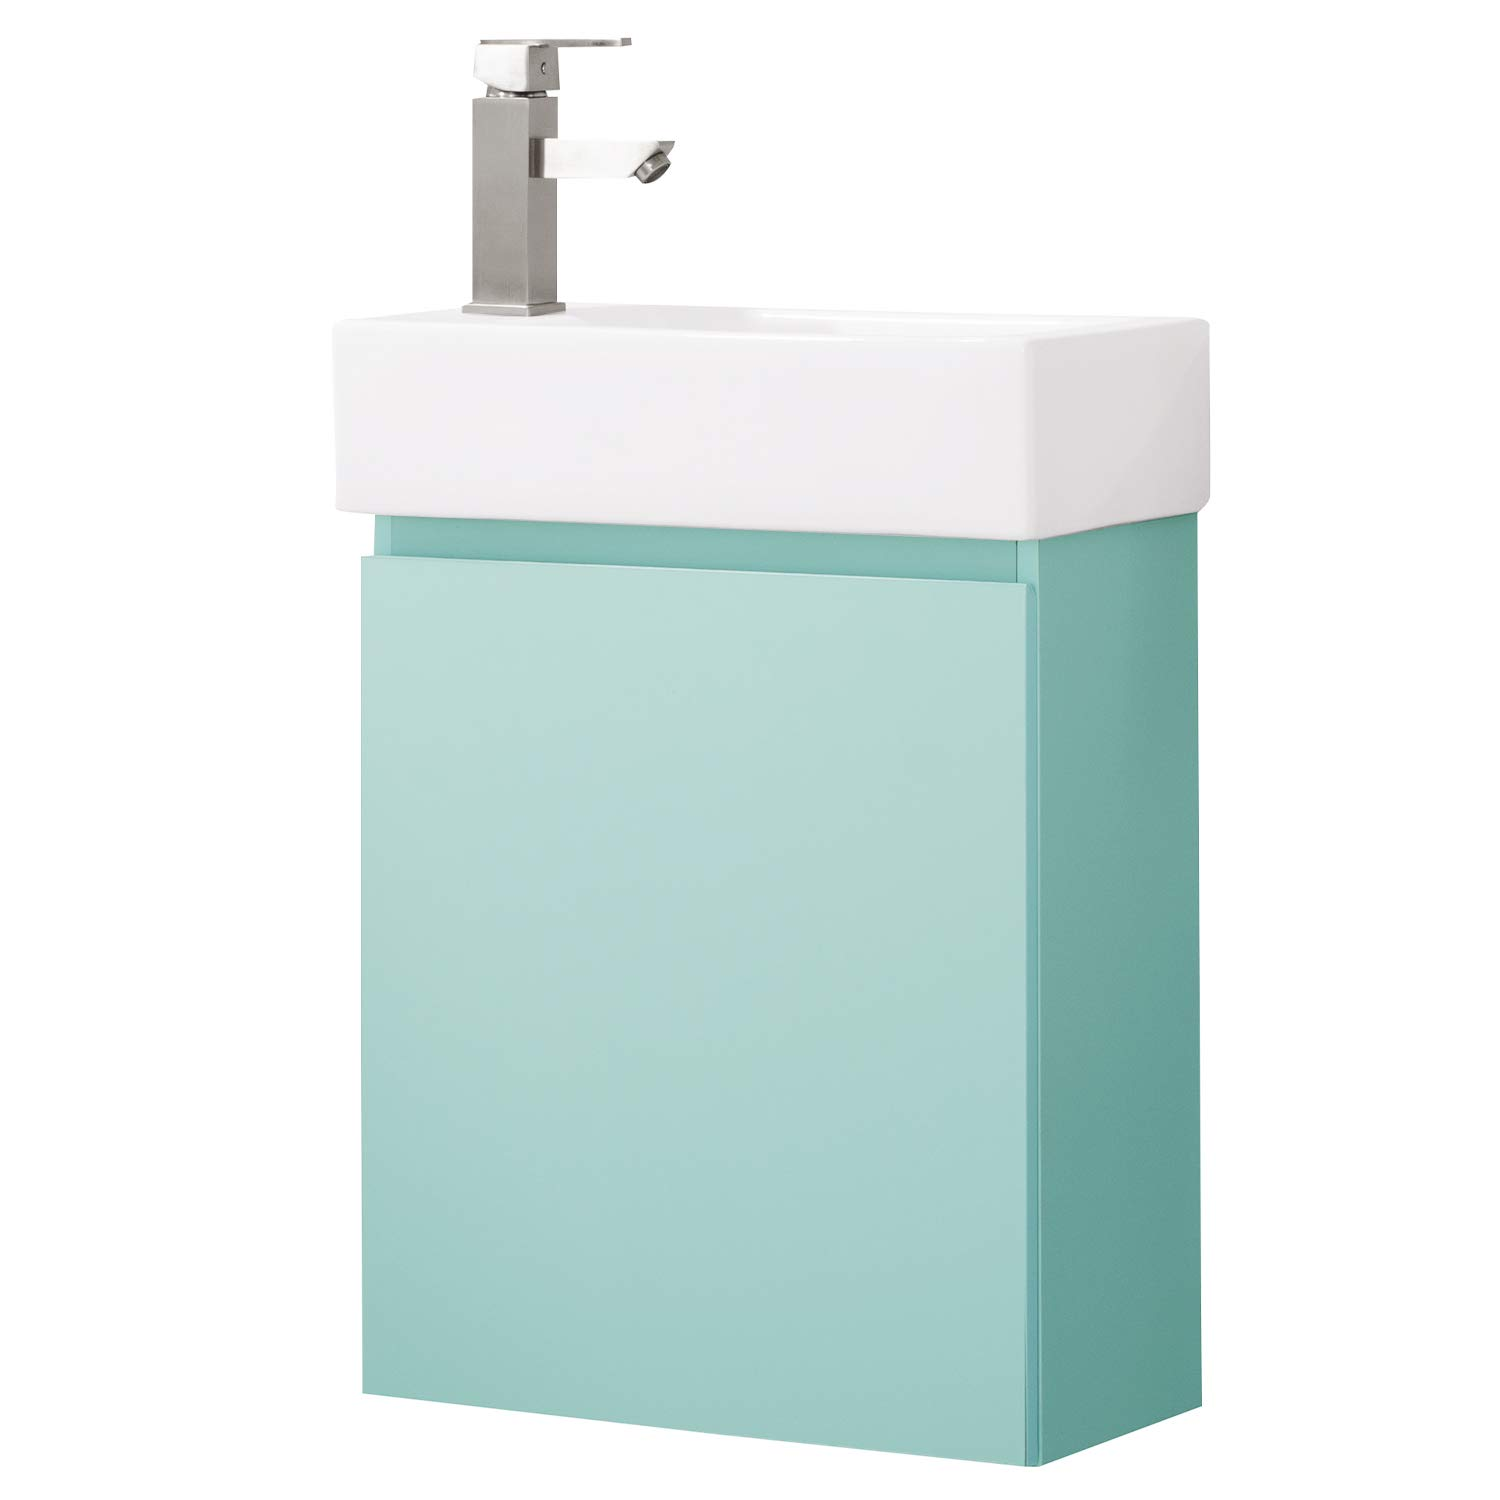 Luca Kitchen & Bath LC20KRP Nova 20'' Bathroom Vanity with Sink in Blue Mint, Wall Hung Style, Made with Hardwood and Integrated Porcelain Top,